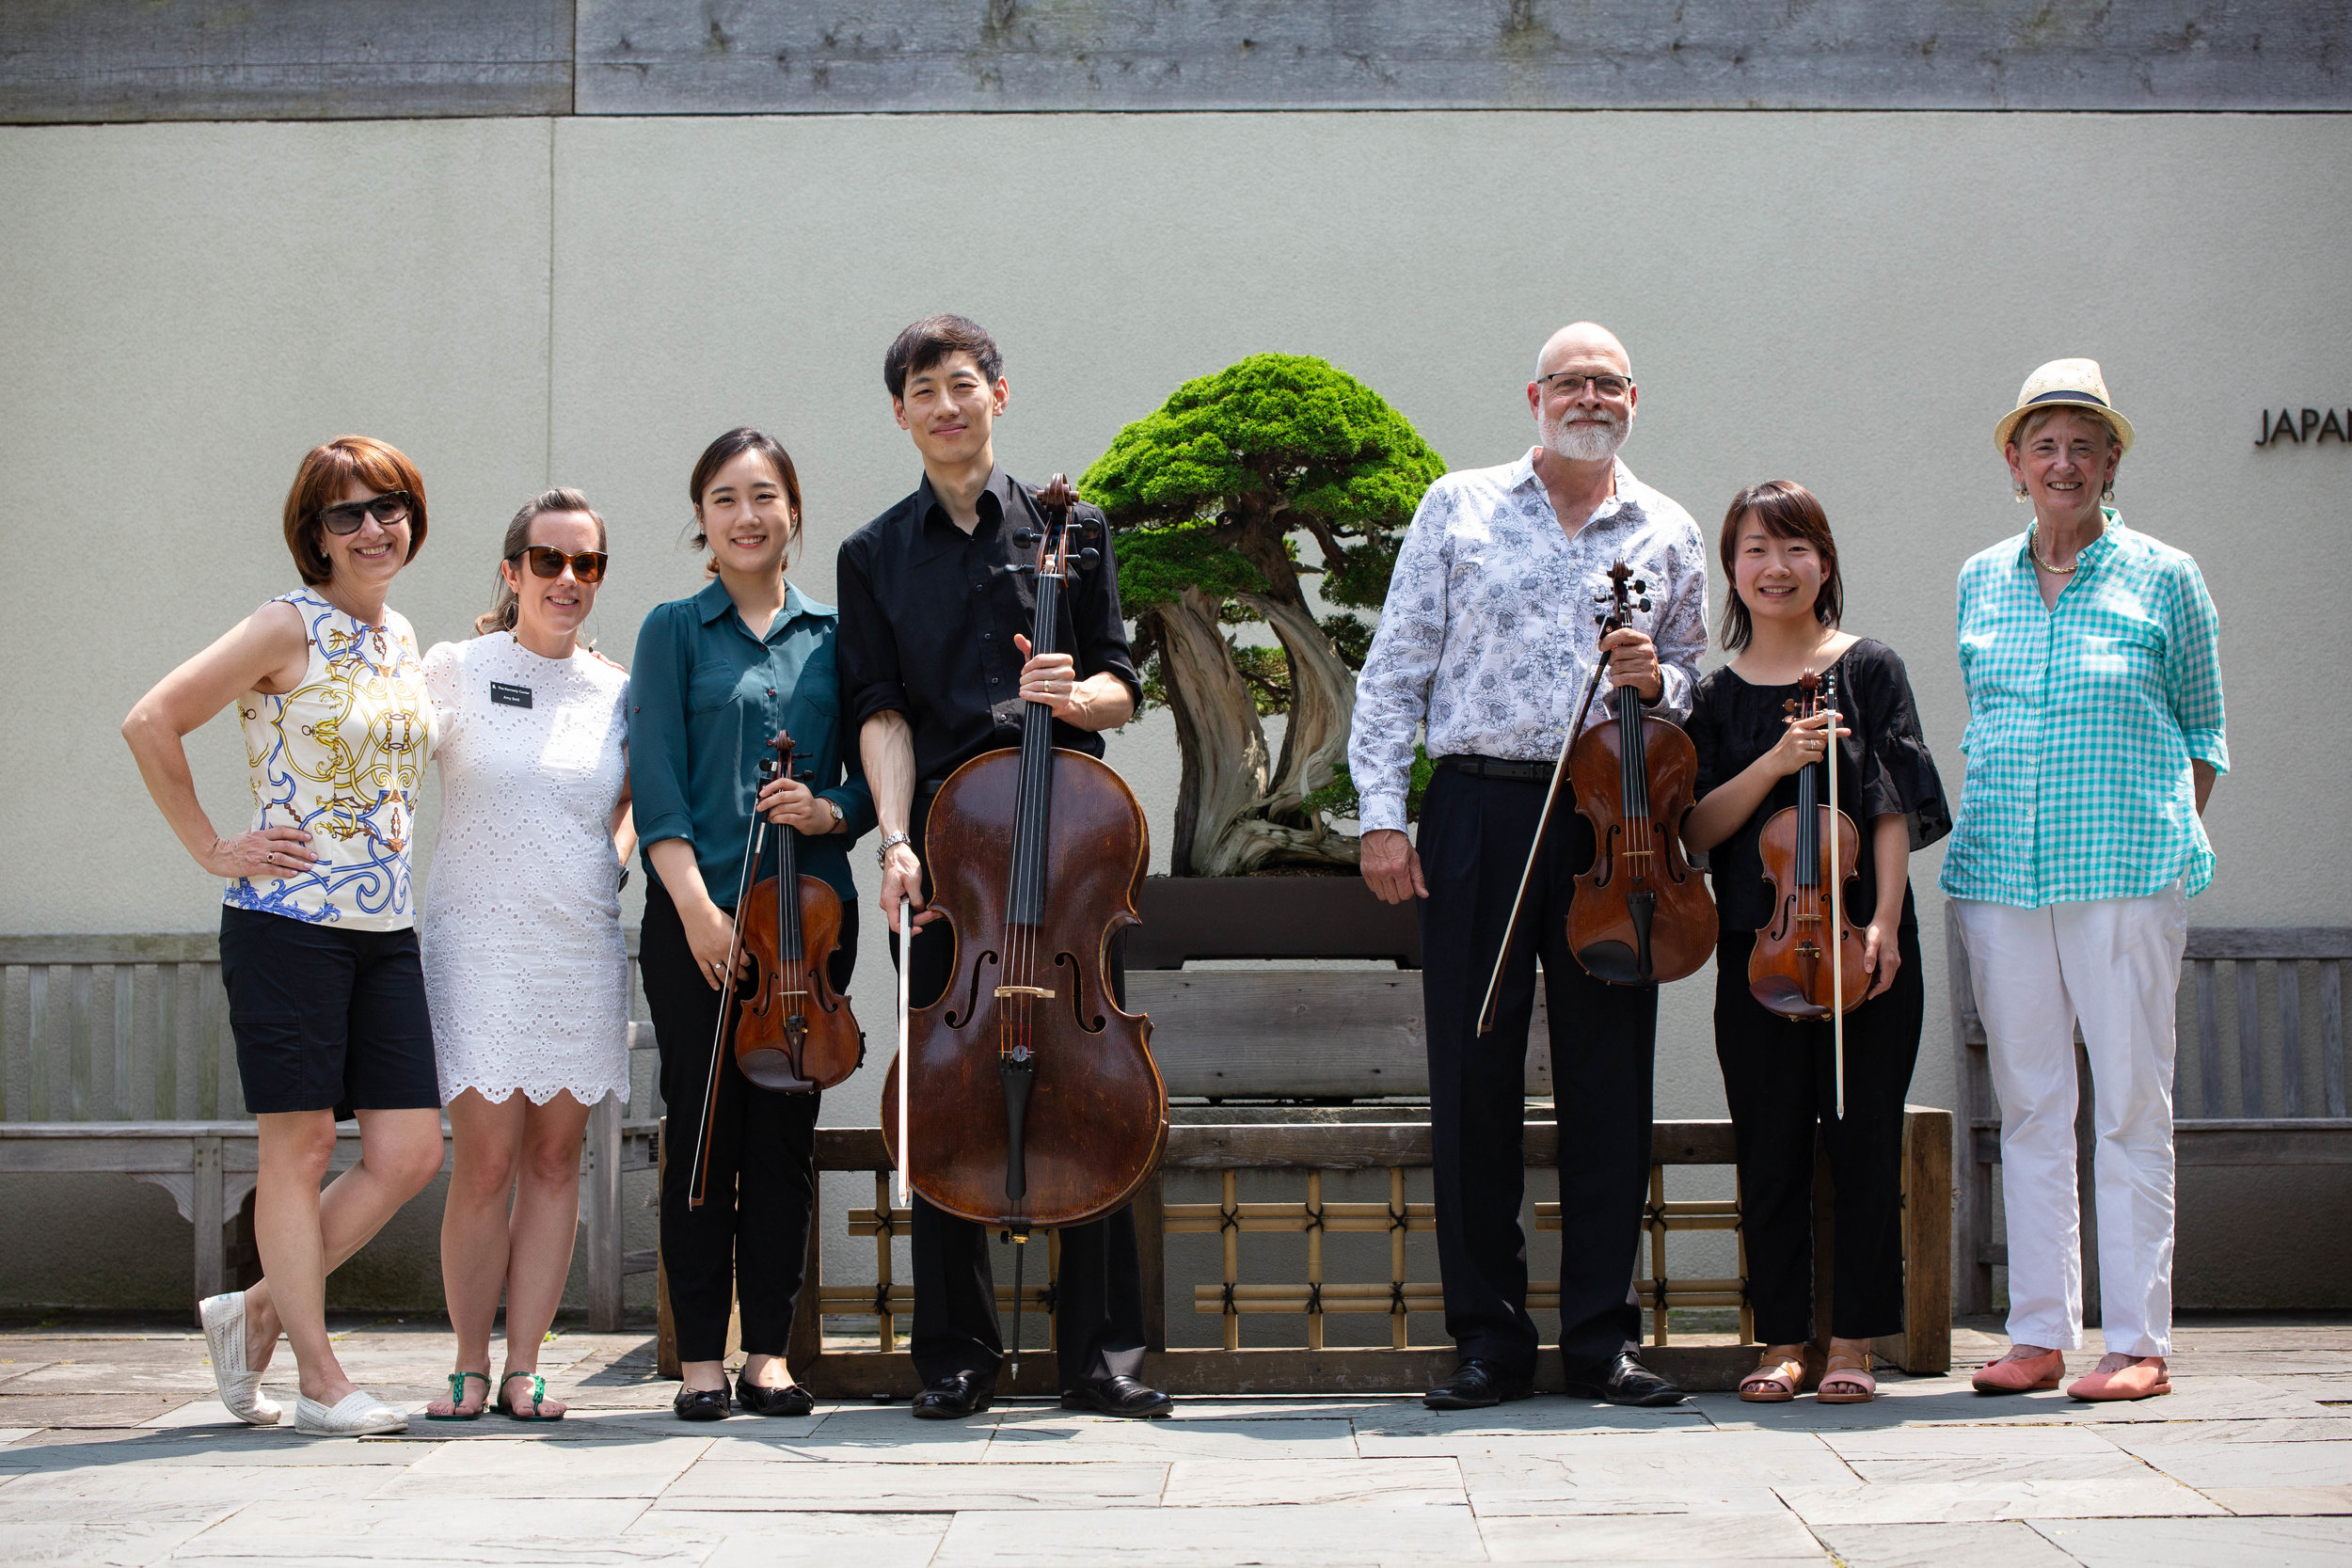 (L-R) Janice Vitale (NBF Board Member), Amy Grossnickle (Kennedy Center), NSO Musicians, Johann Klodzen (NBF Executive Director) posed with the Juniperus chinensis var. Itoigawa (donated by the Kennett Collection).